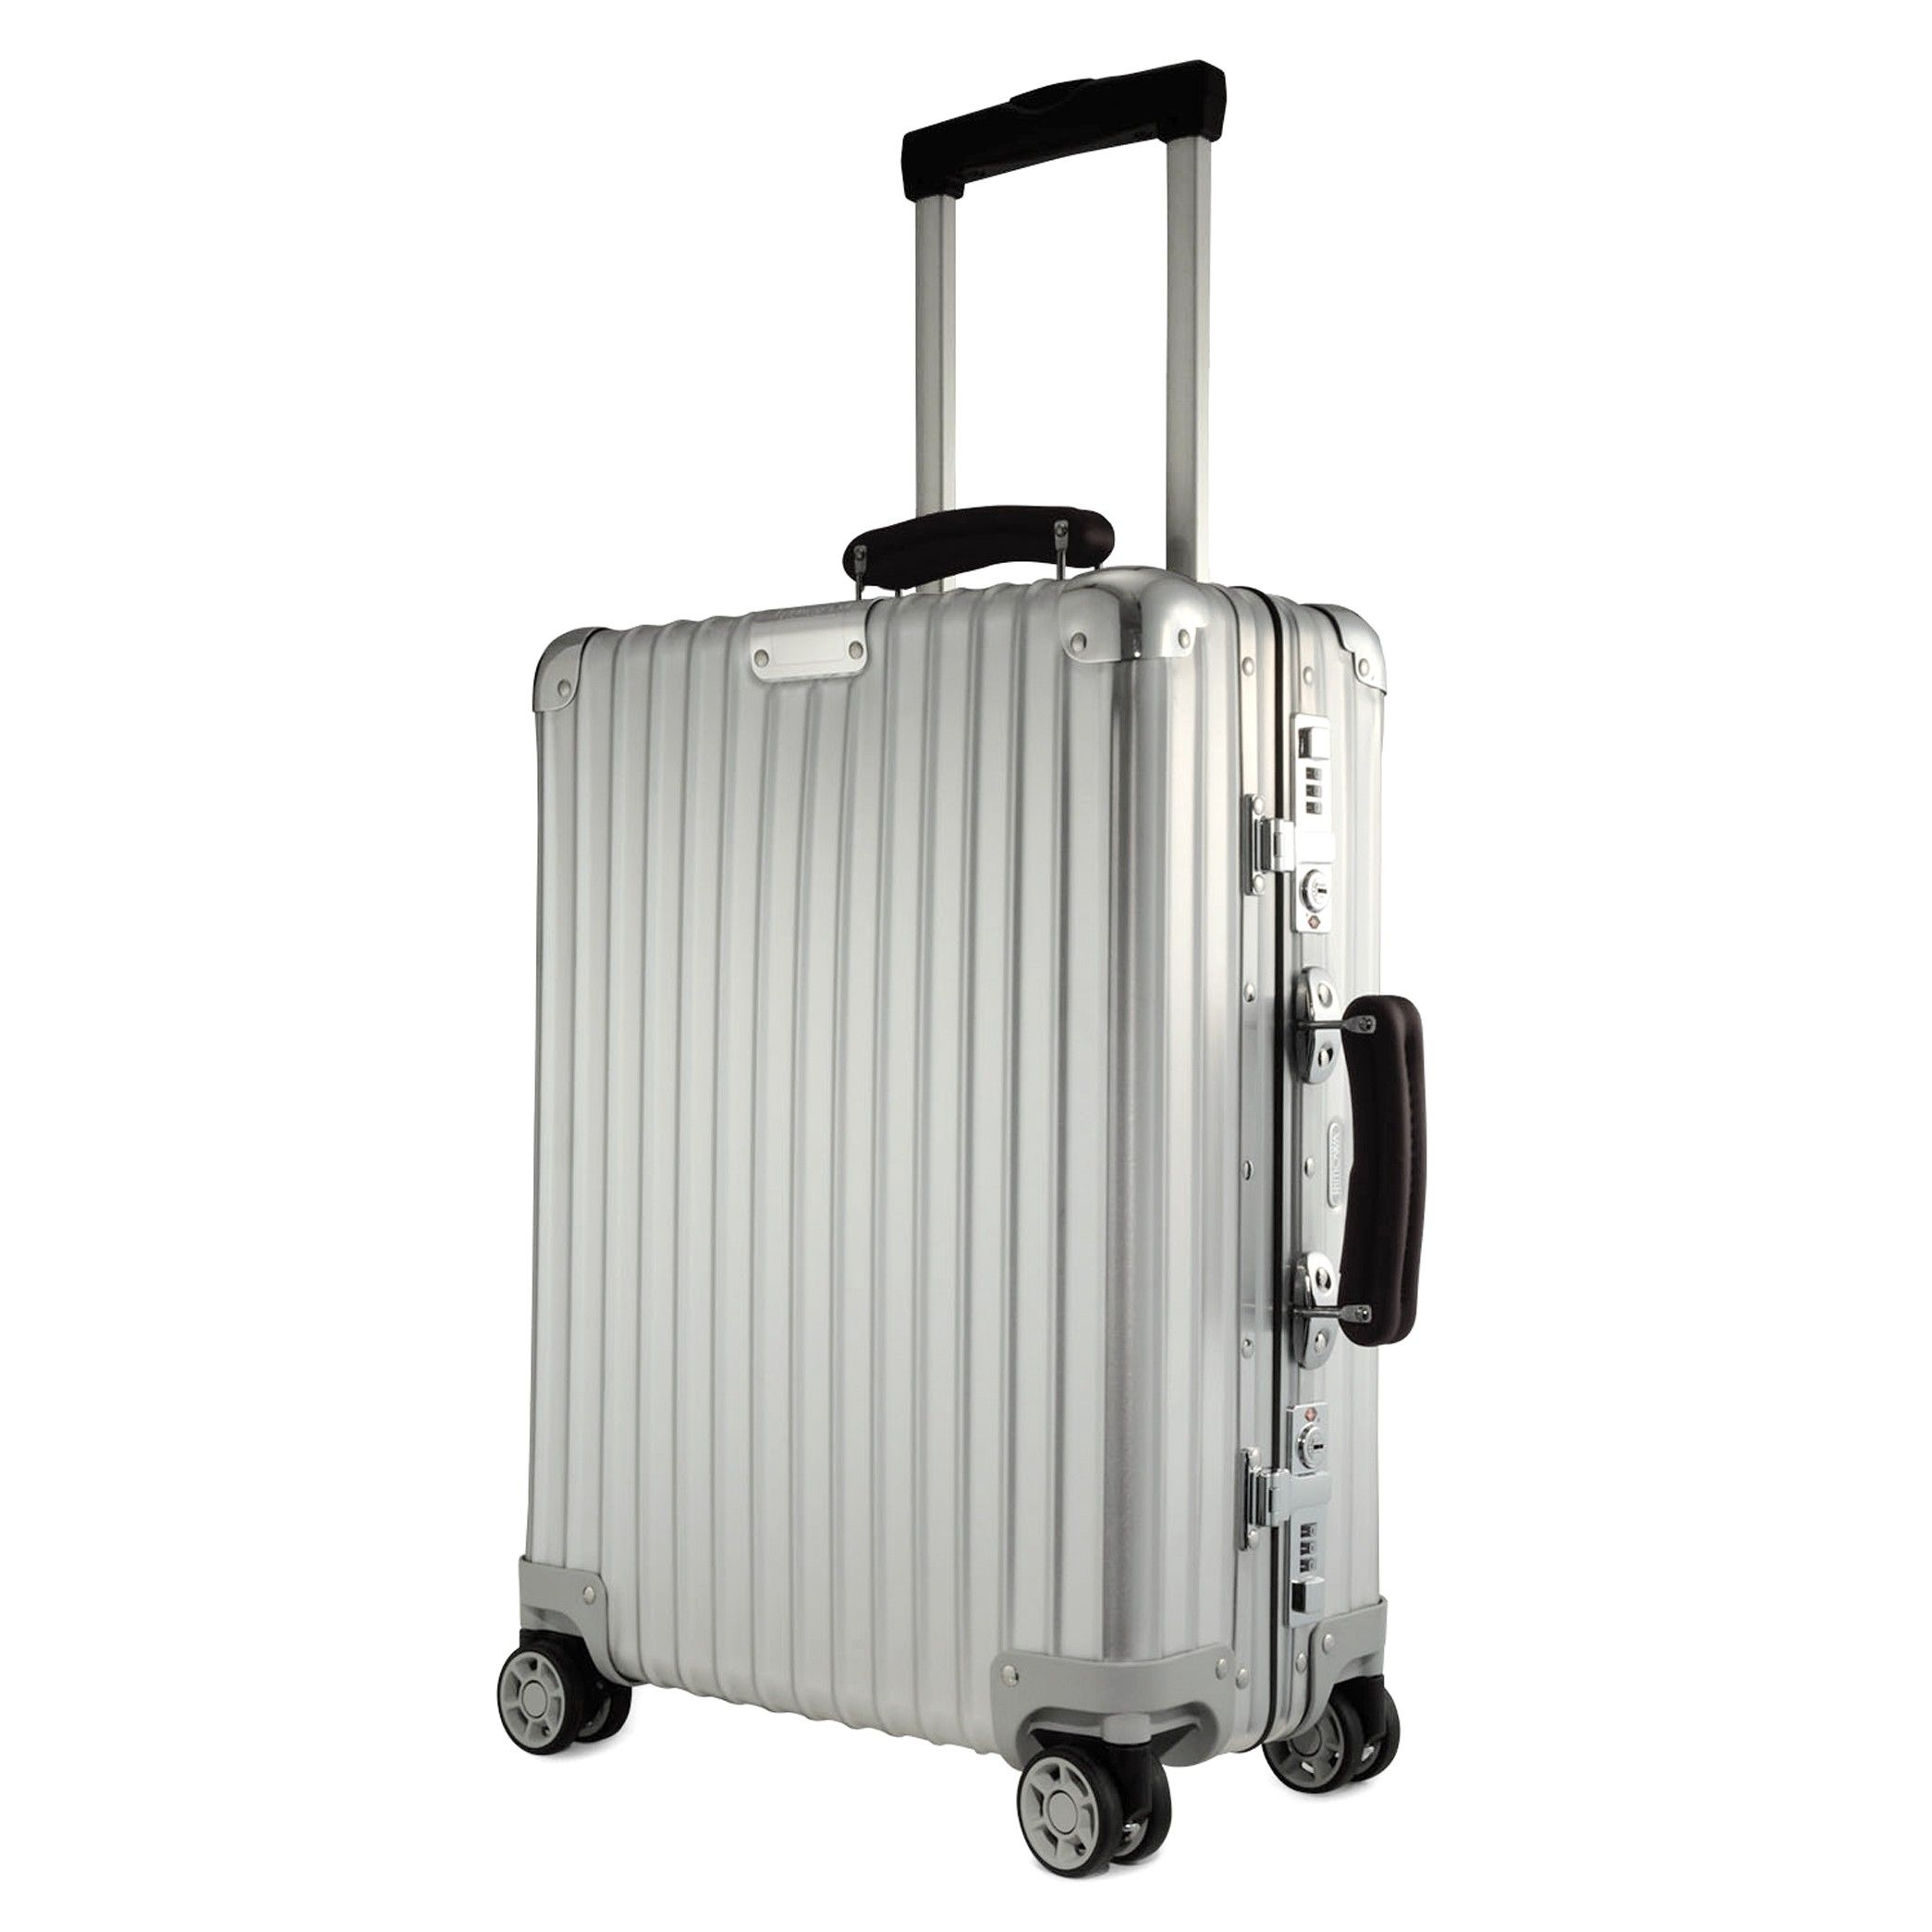 Rimowa Classic Flight Four Wheel Iata Cabin Case 55cm Silver Hermes Jour Damp039hermes For Women Edp 85ml